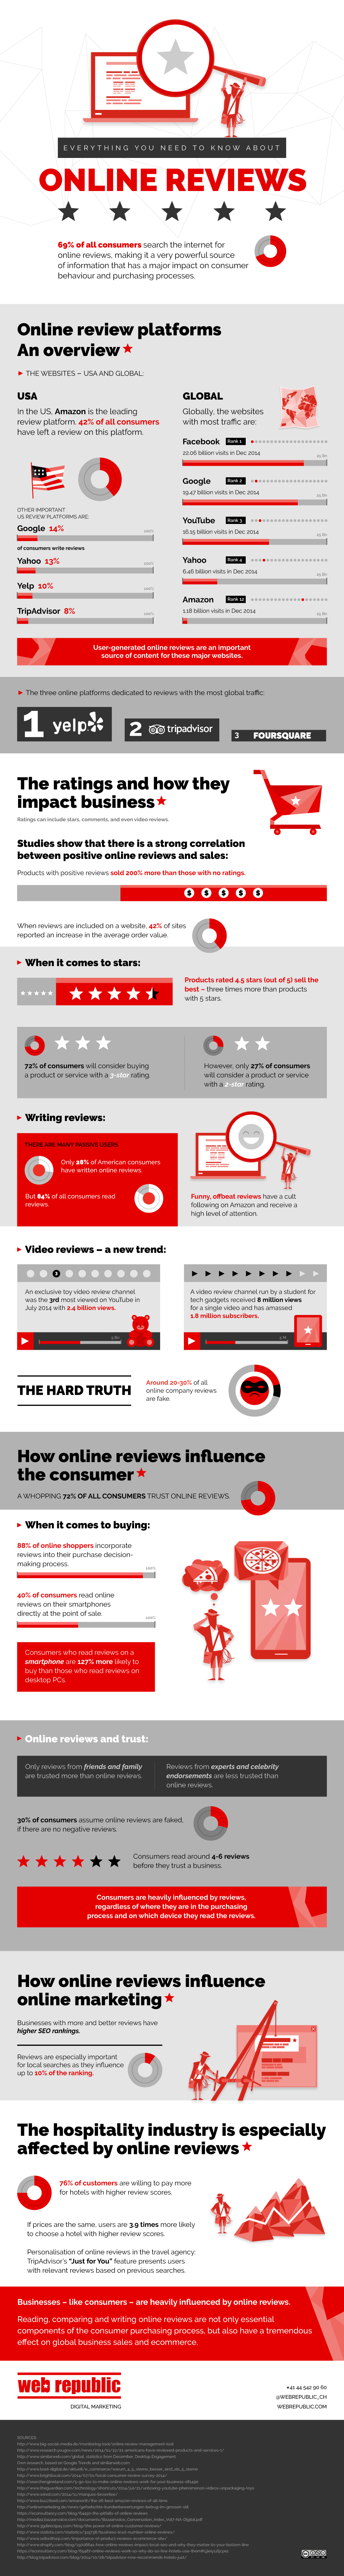 Everything You Need to Know about Online Reviews - #infographic